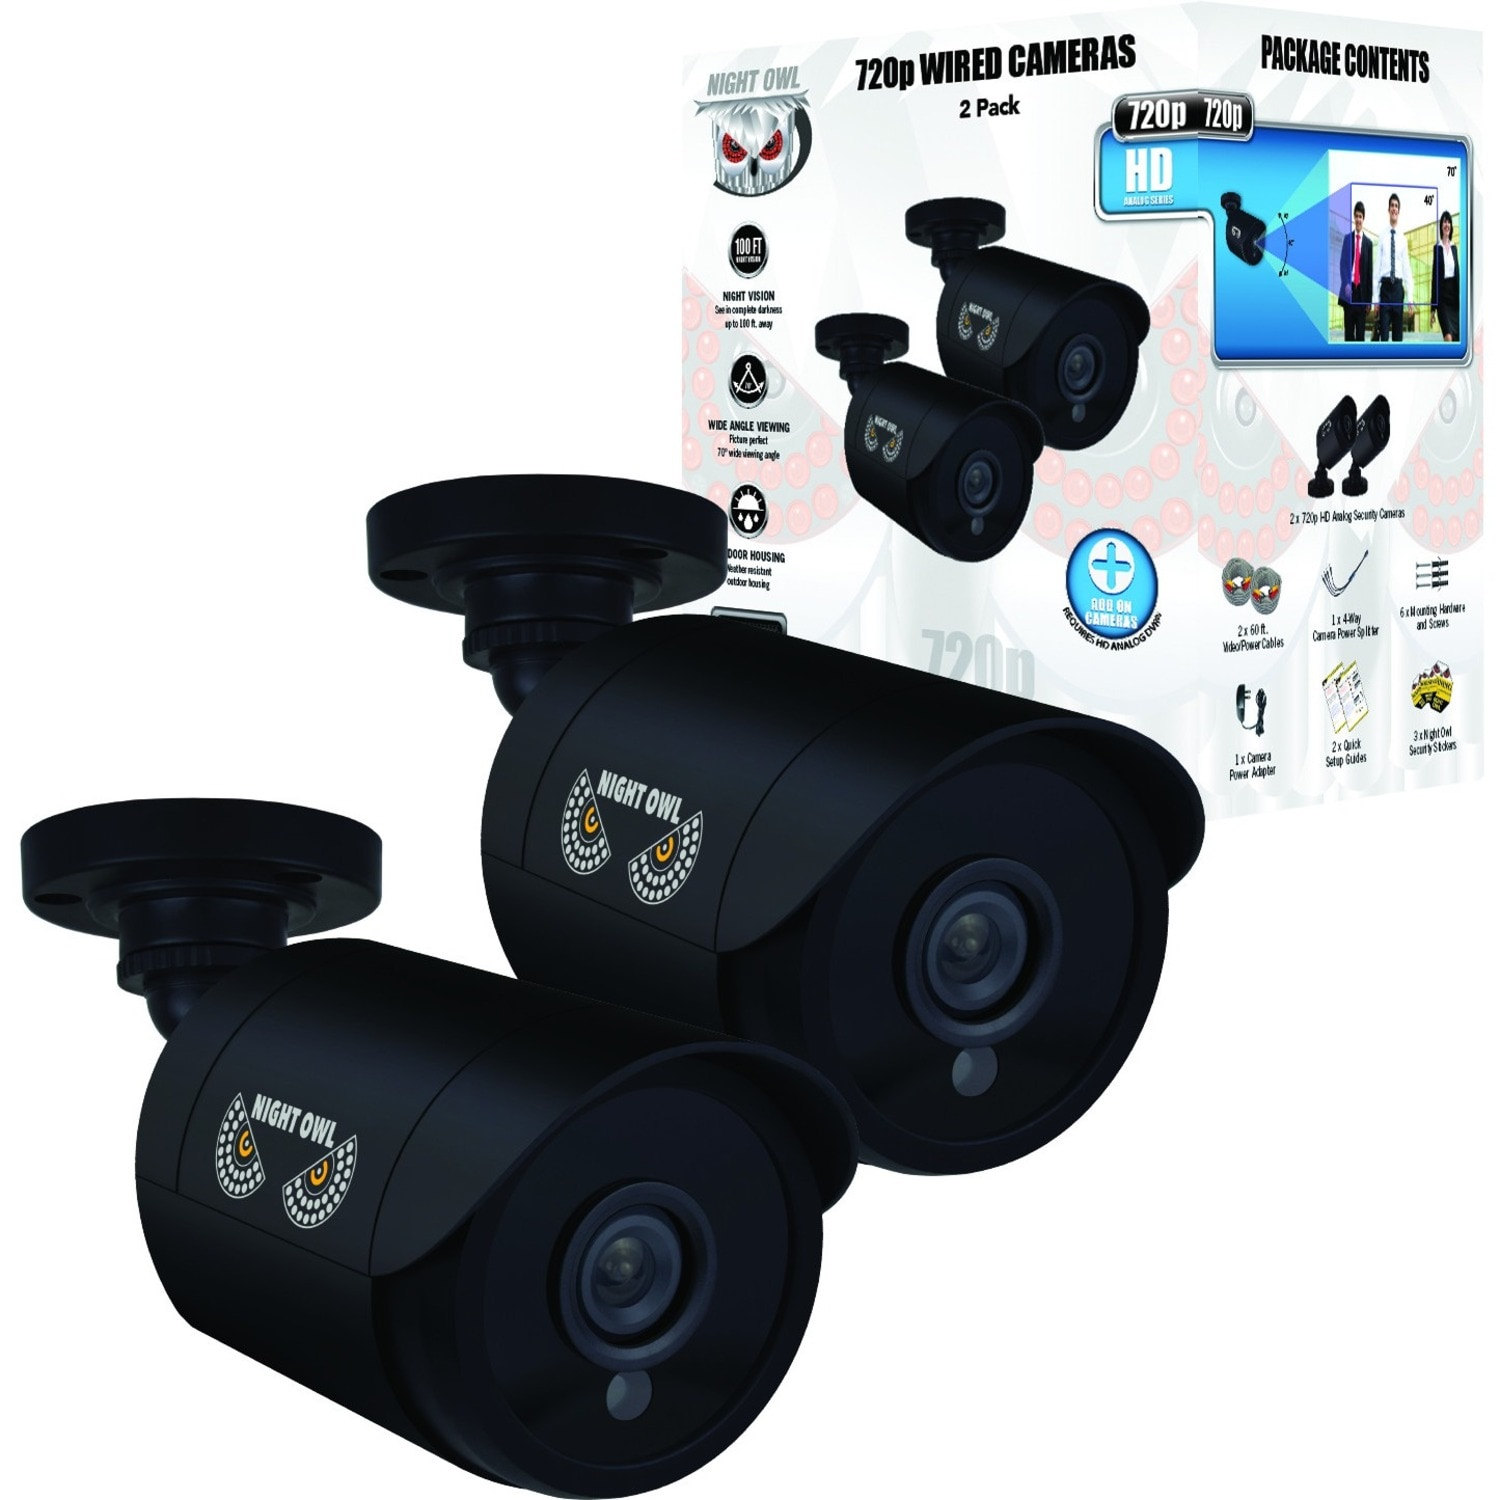 Night Owl Cm Hda7b Bu 1 Megapixel Surveillance Camera 2